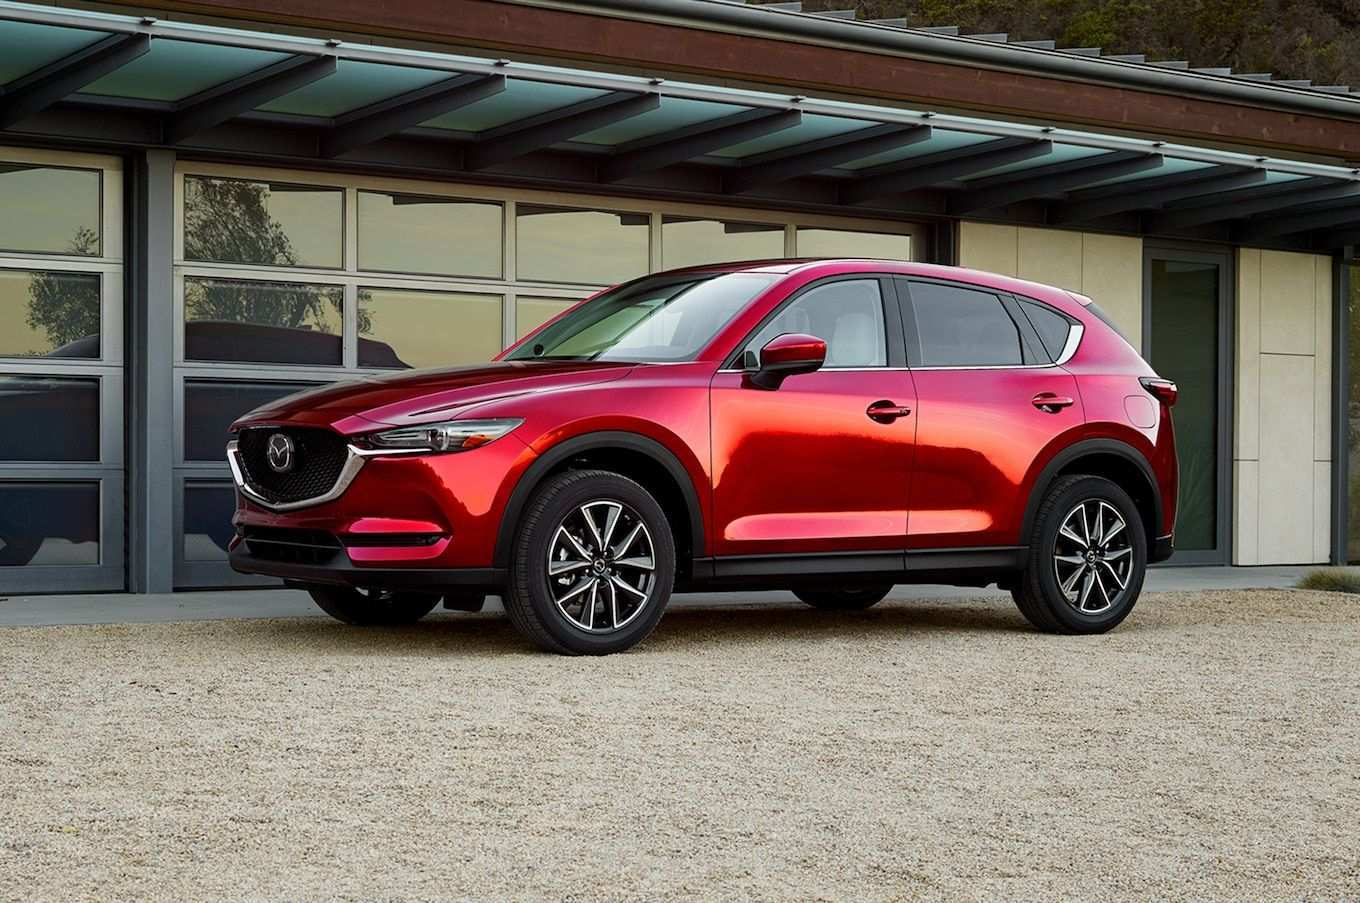 49 All New Mazda Diesel Canada 2020 Configurations for Mazda Diesel Canada 2020